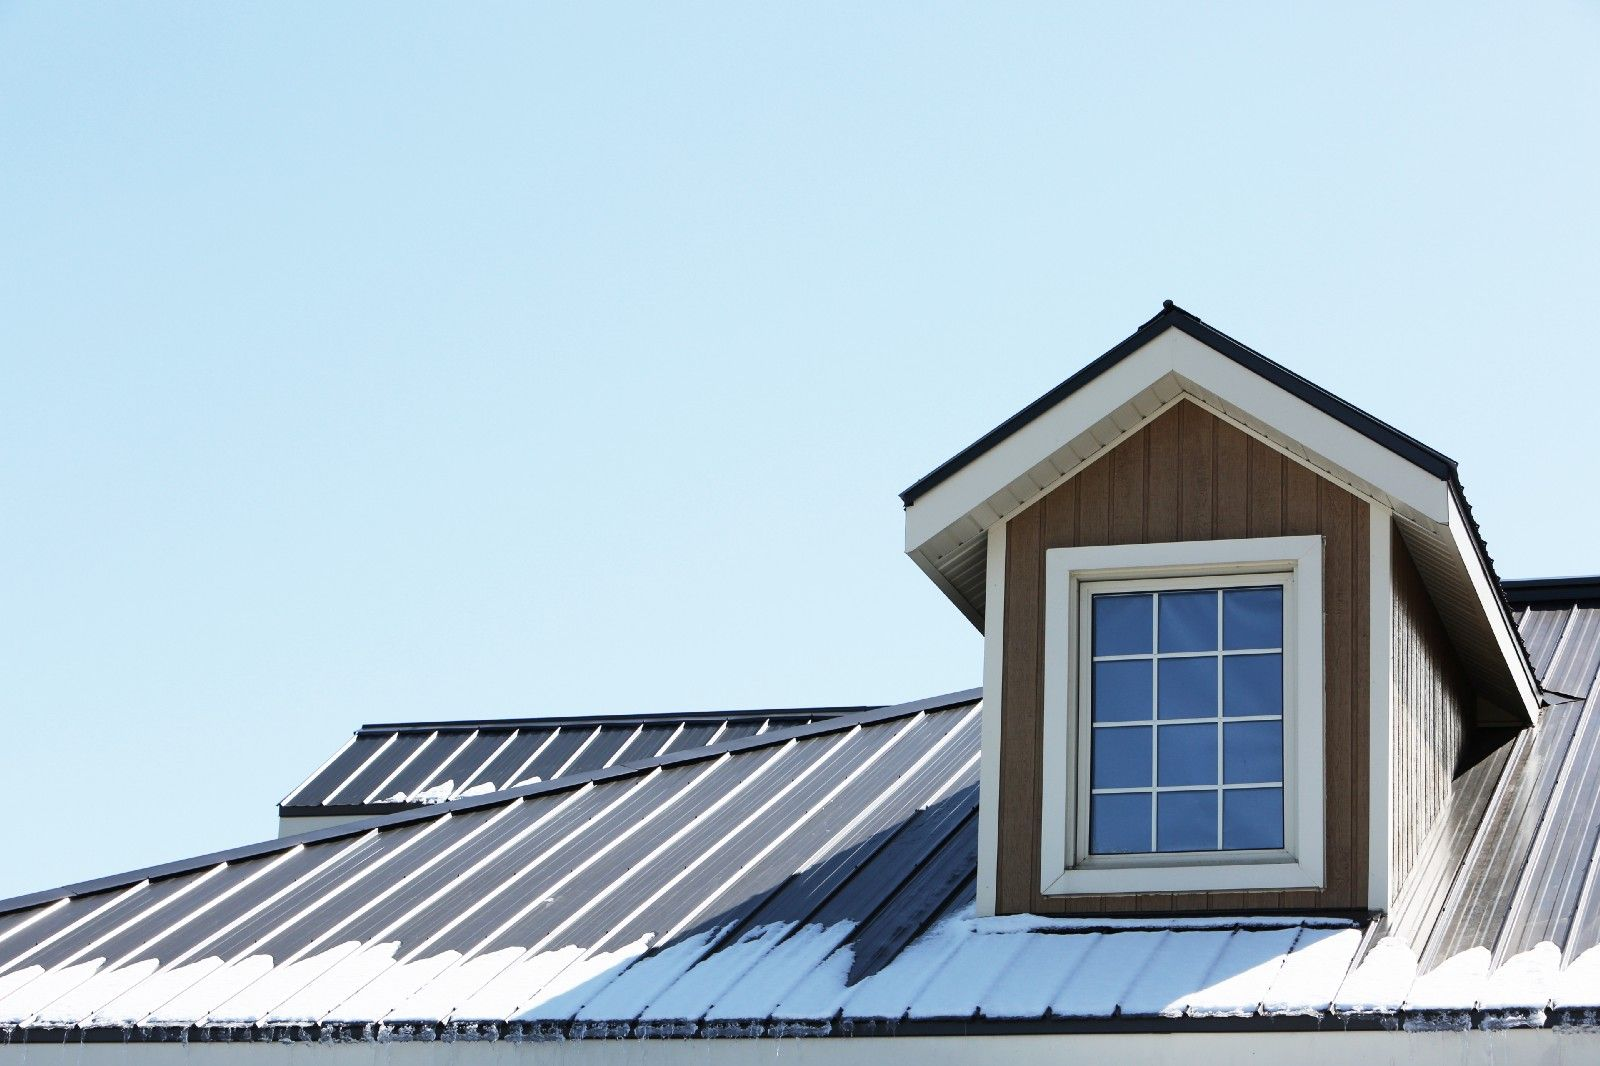 Things You Should Know About Deck Waterproofing Roofing Roof Maintenance House Viewing